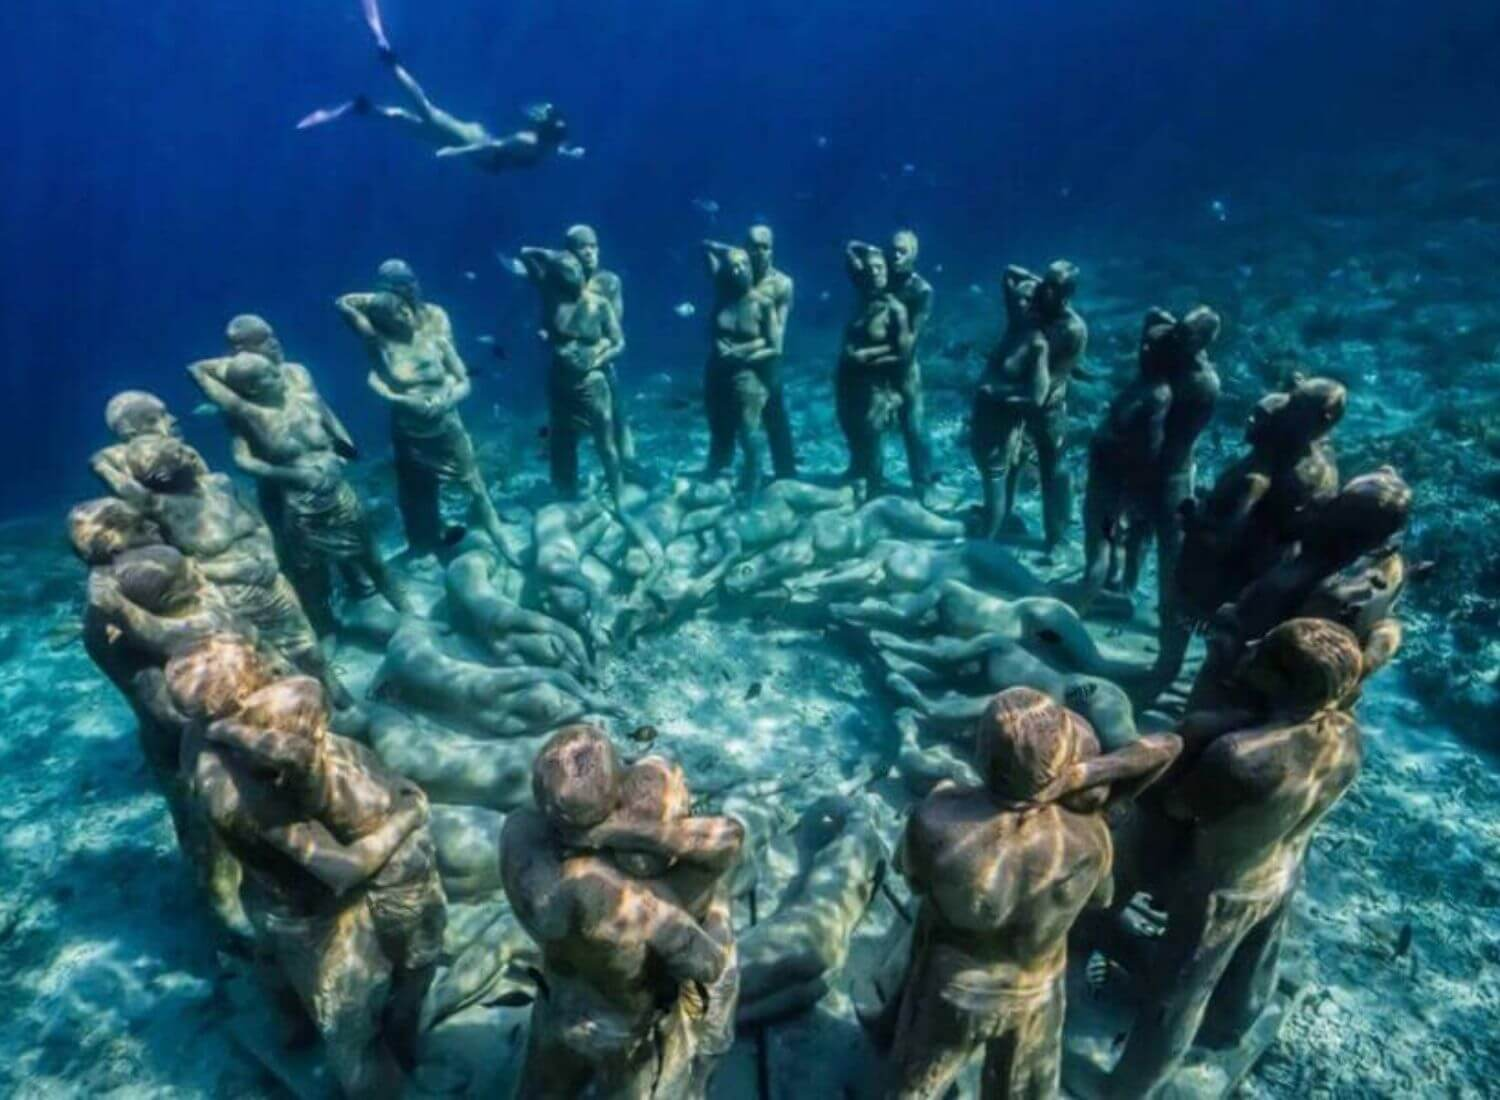 Deep Blue Mystery In The Hearts Of Indonesia: The Underwater Temple Garden